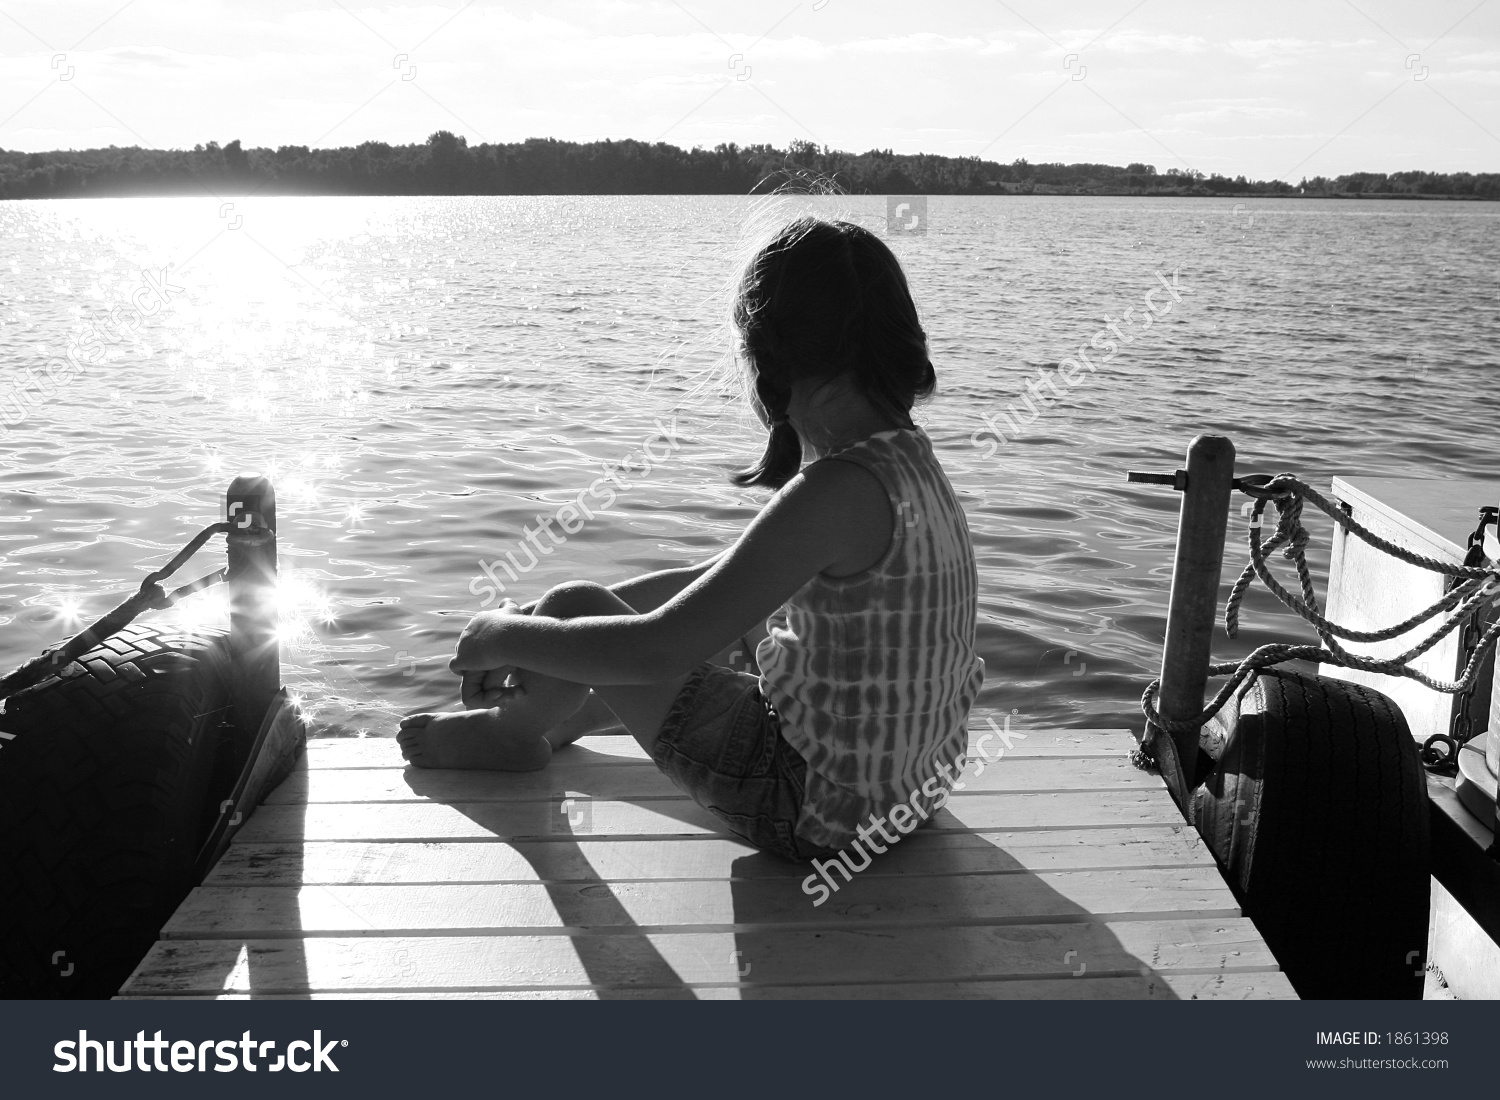 Black And White Image Of A Girl Sitting On A Pier, Overlooking A.